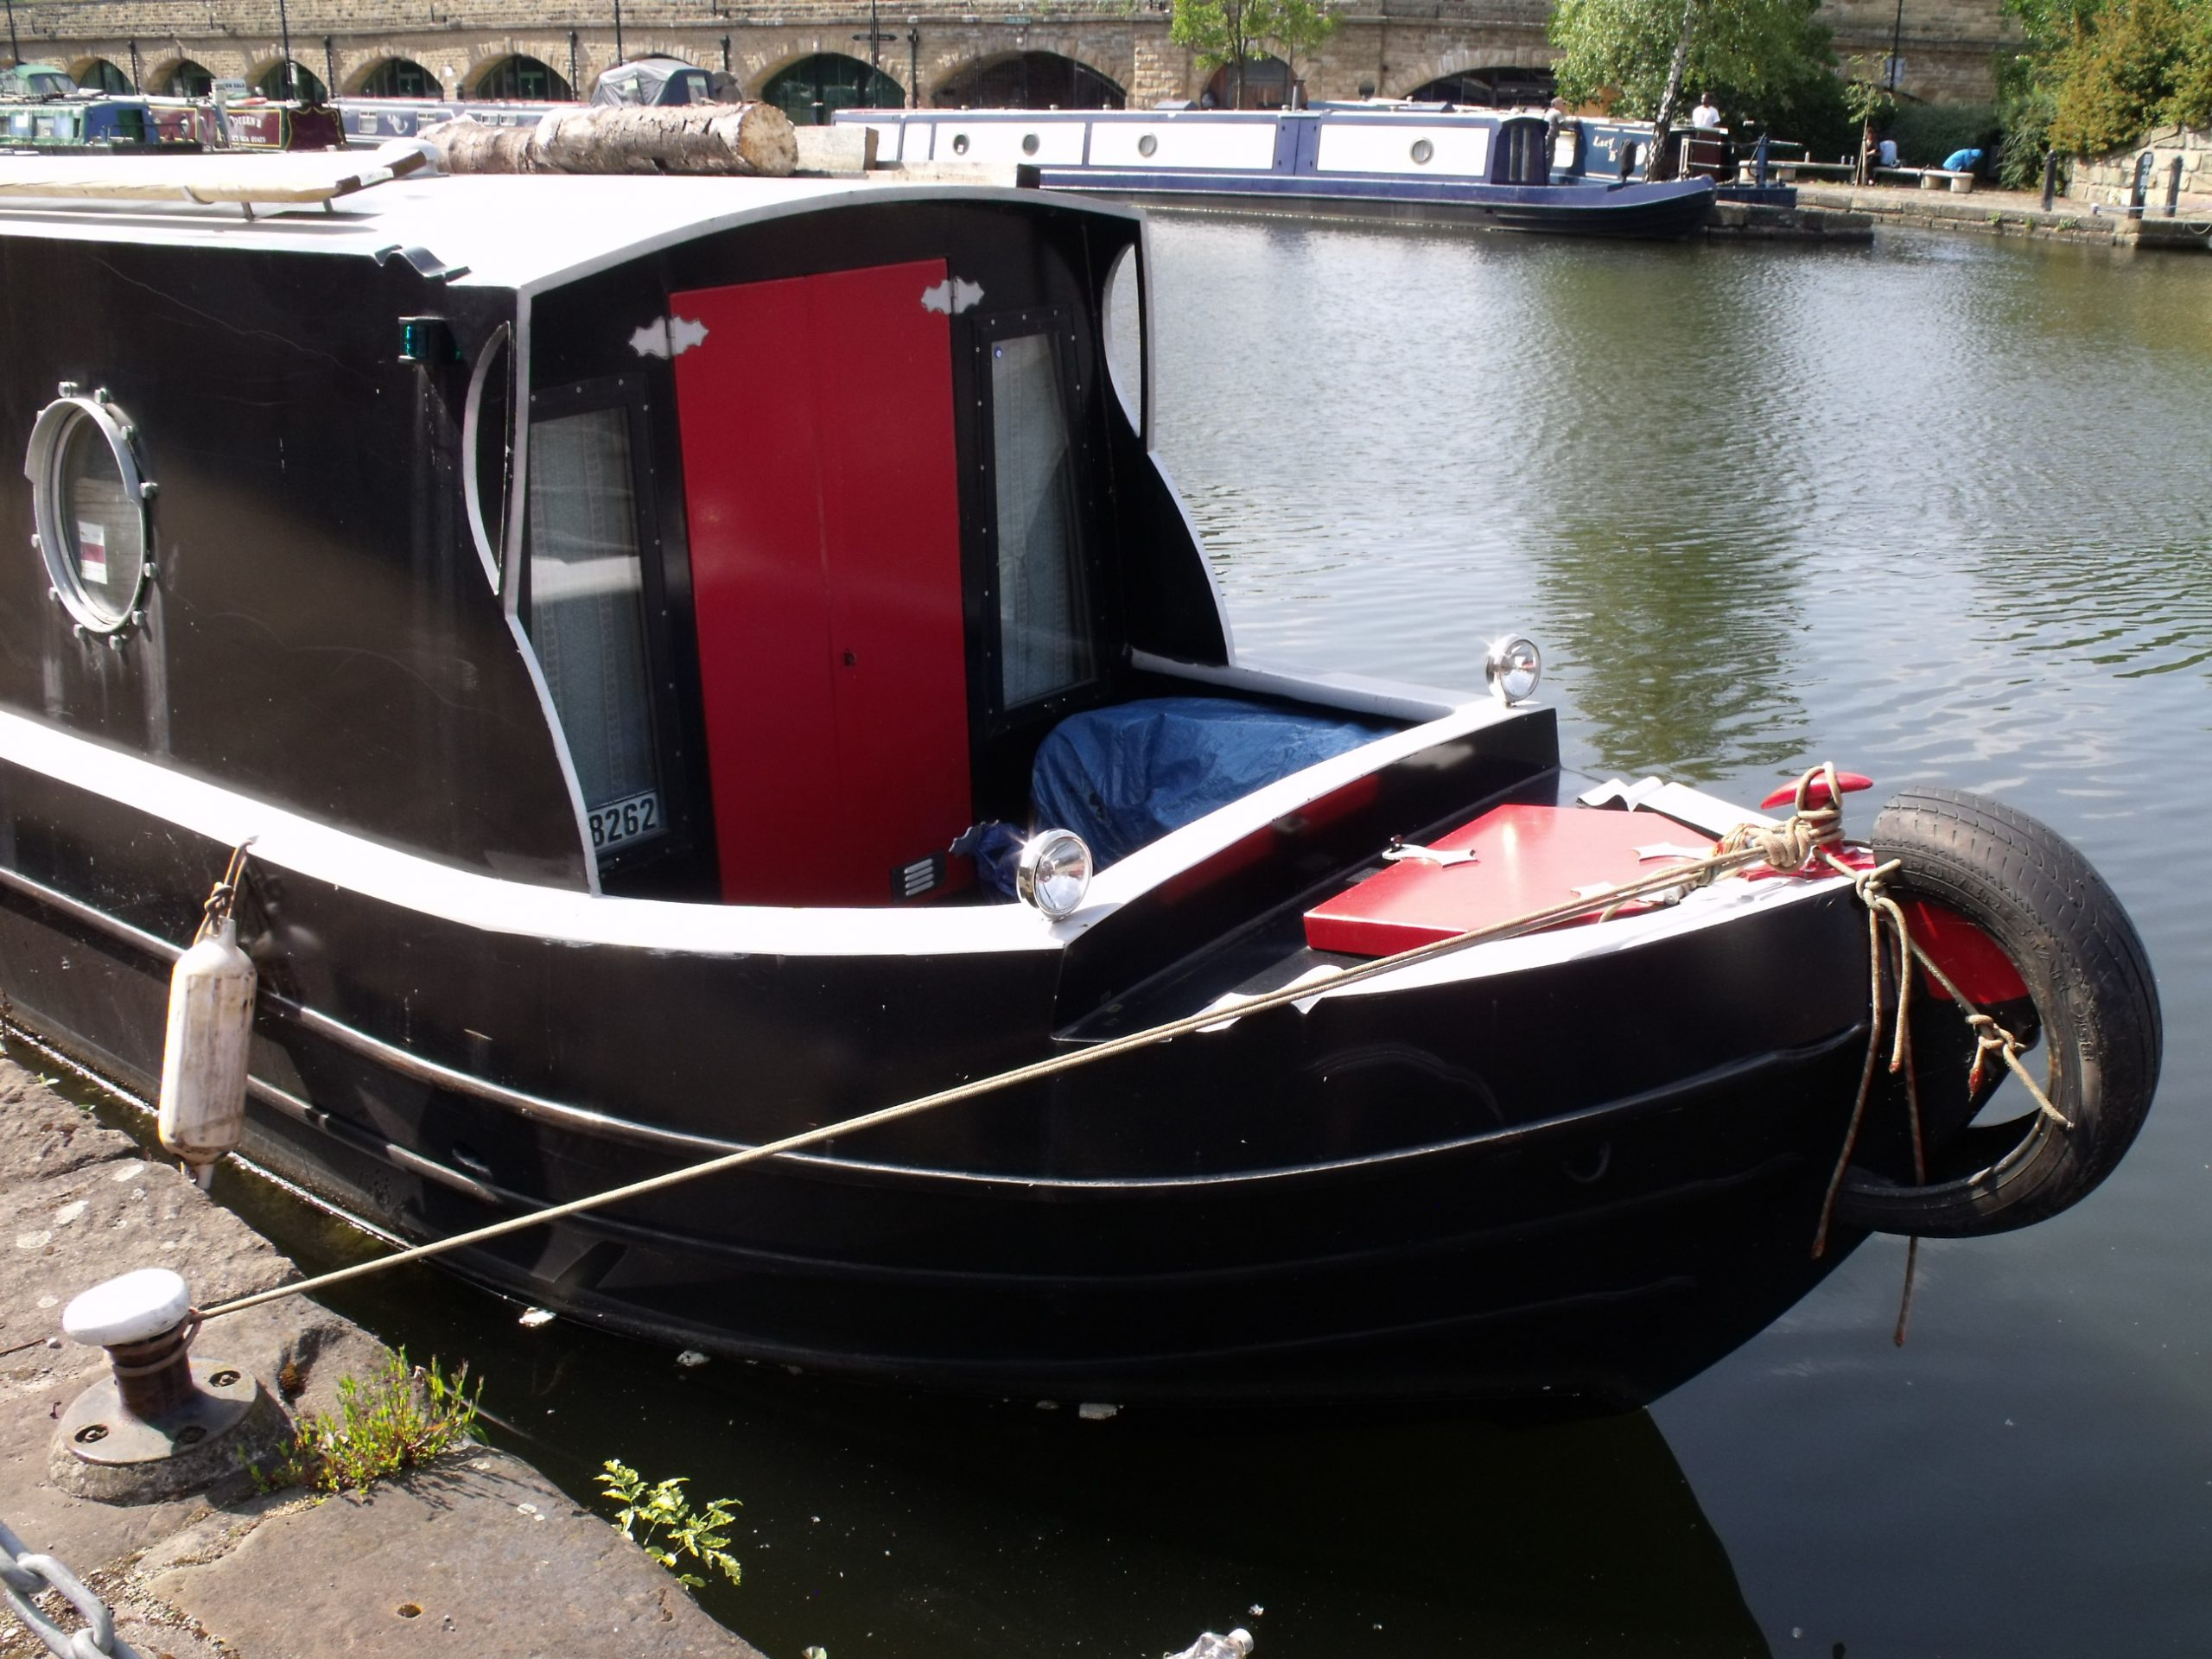 Narrowboat Trilby, built by Paul Widdowson of Newark